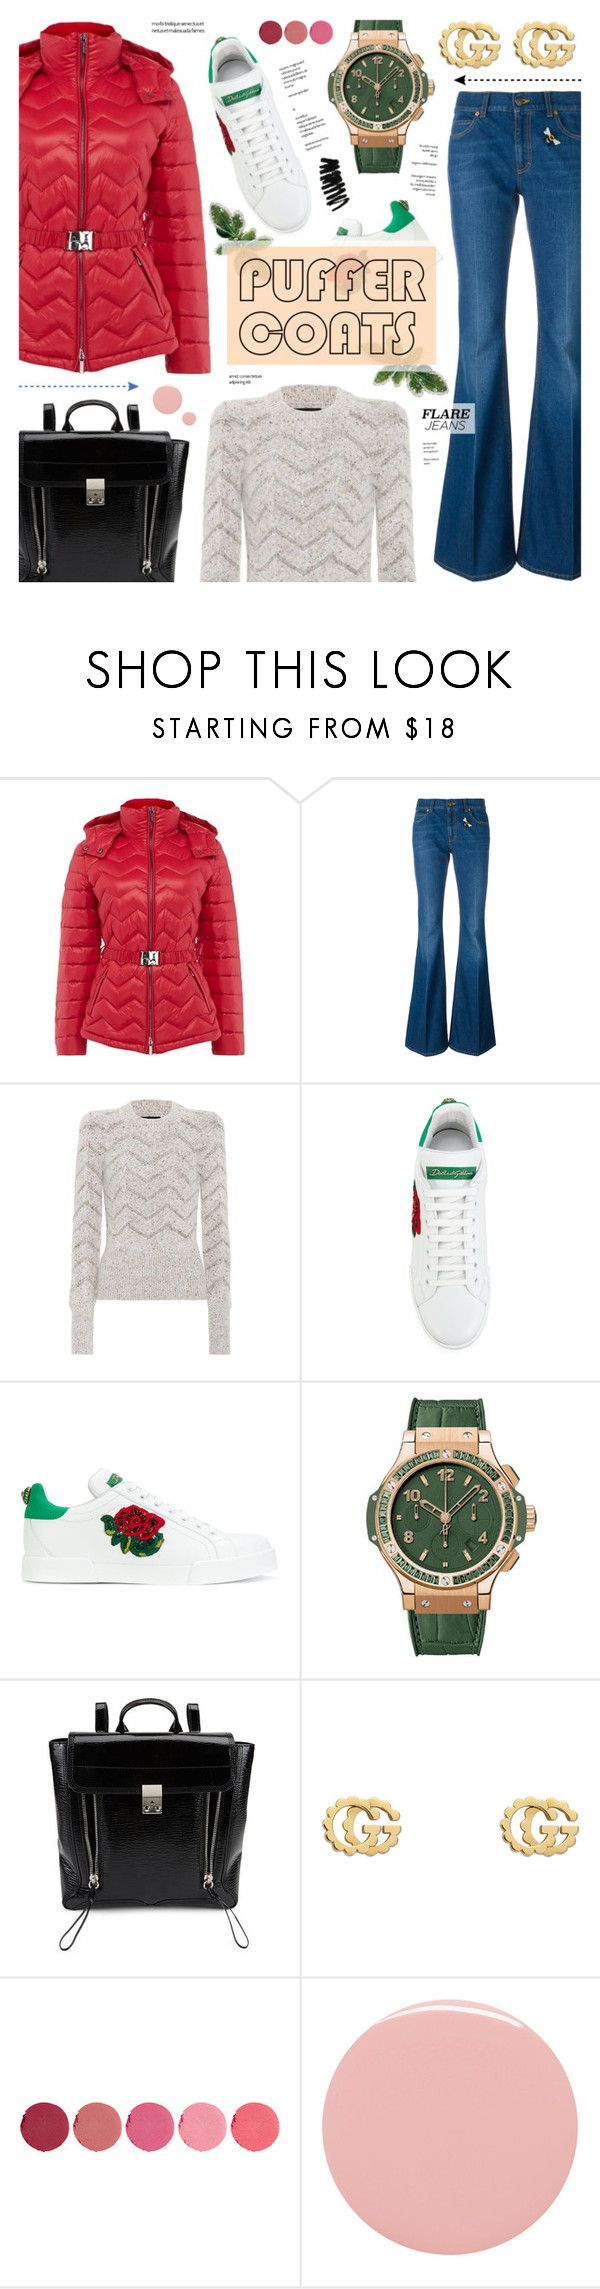 """""""Puffer Coat & Flare Jeans"""" by anyasdesigns ❤ liked on Polyvore featuring Armani Exchange, Gucci, Isabel Marant, Dolce&Gabbana, Hublot, 3.1 Phillip Lim, Kjaer Weis, Lauren B. Beauty and Bobbi Brown Cosmetics"""